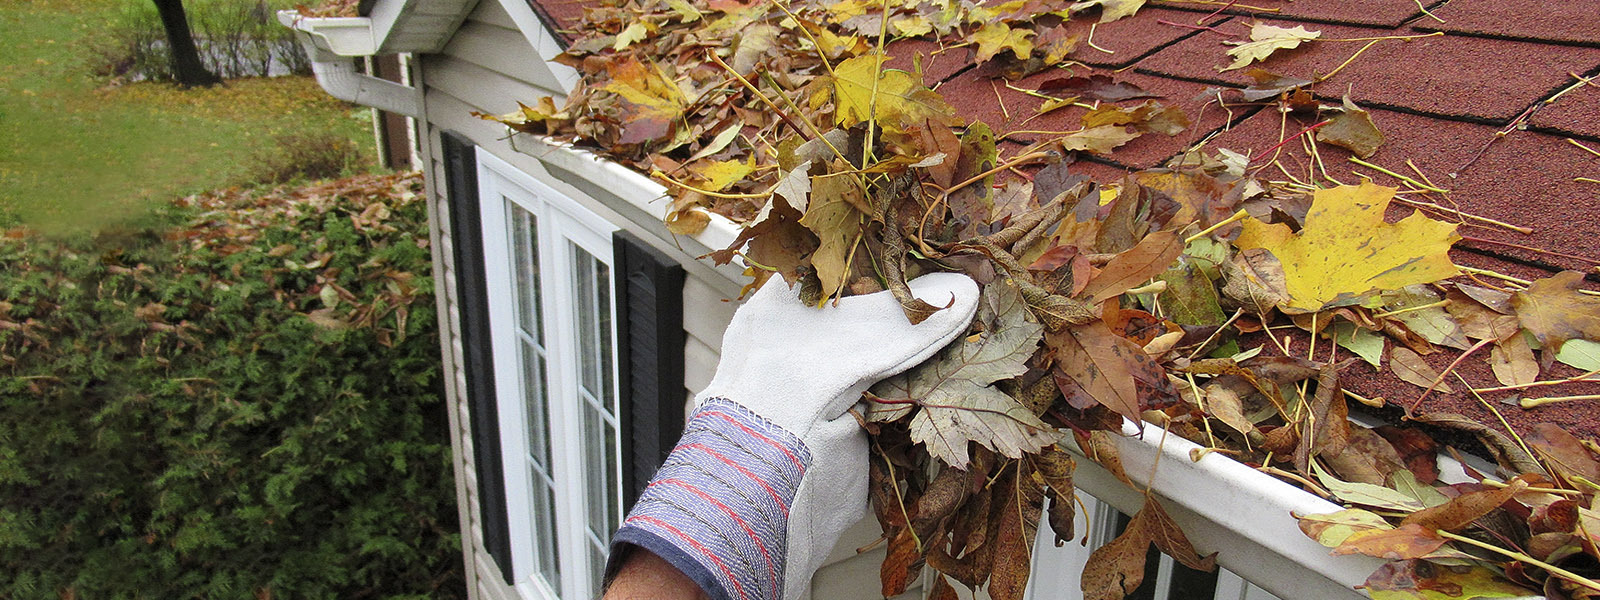 A homeowner cleans a gutter full of leaves